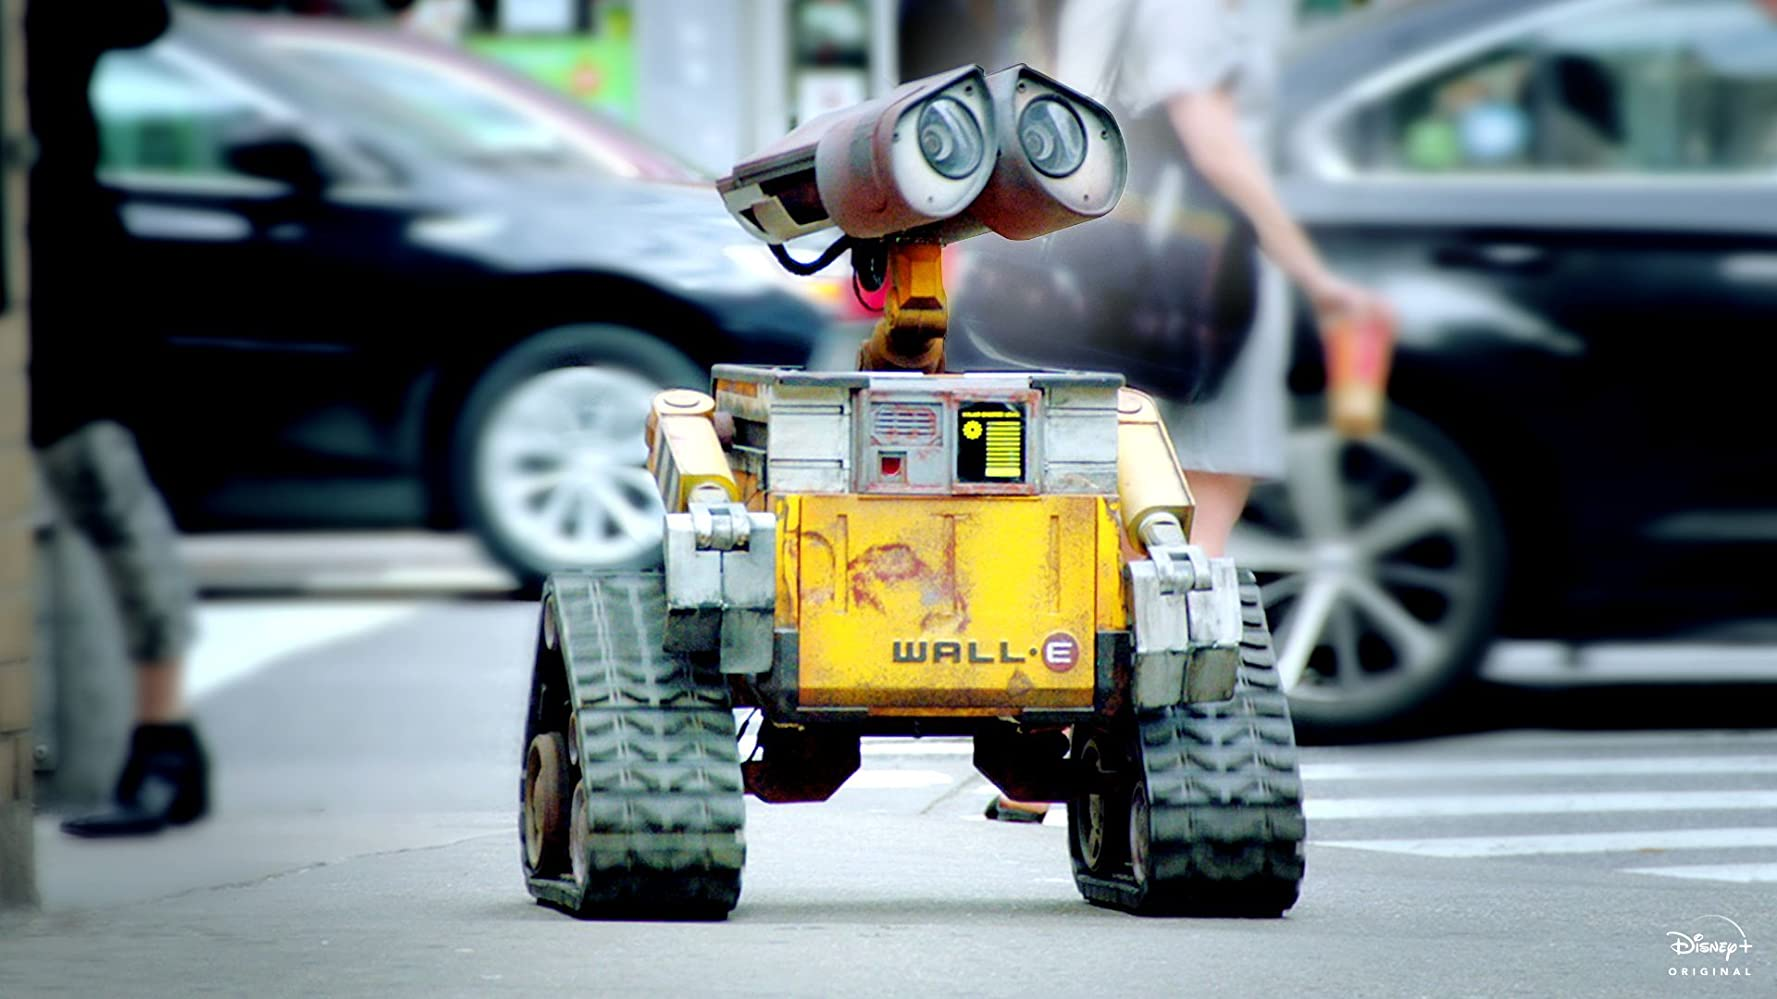 WALL-E: Lost and Found